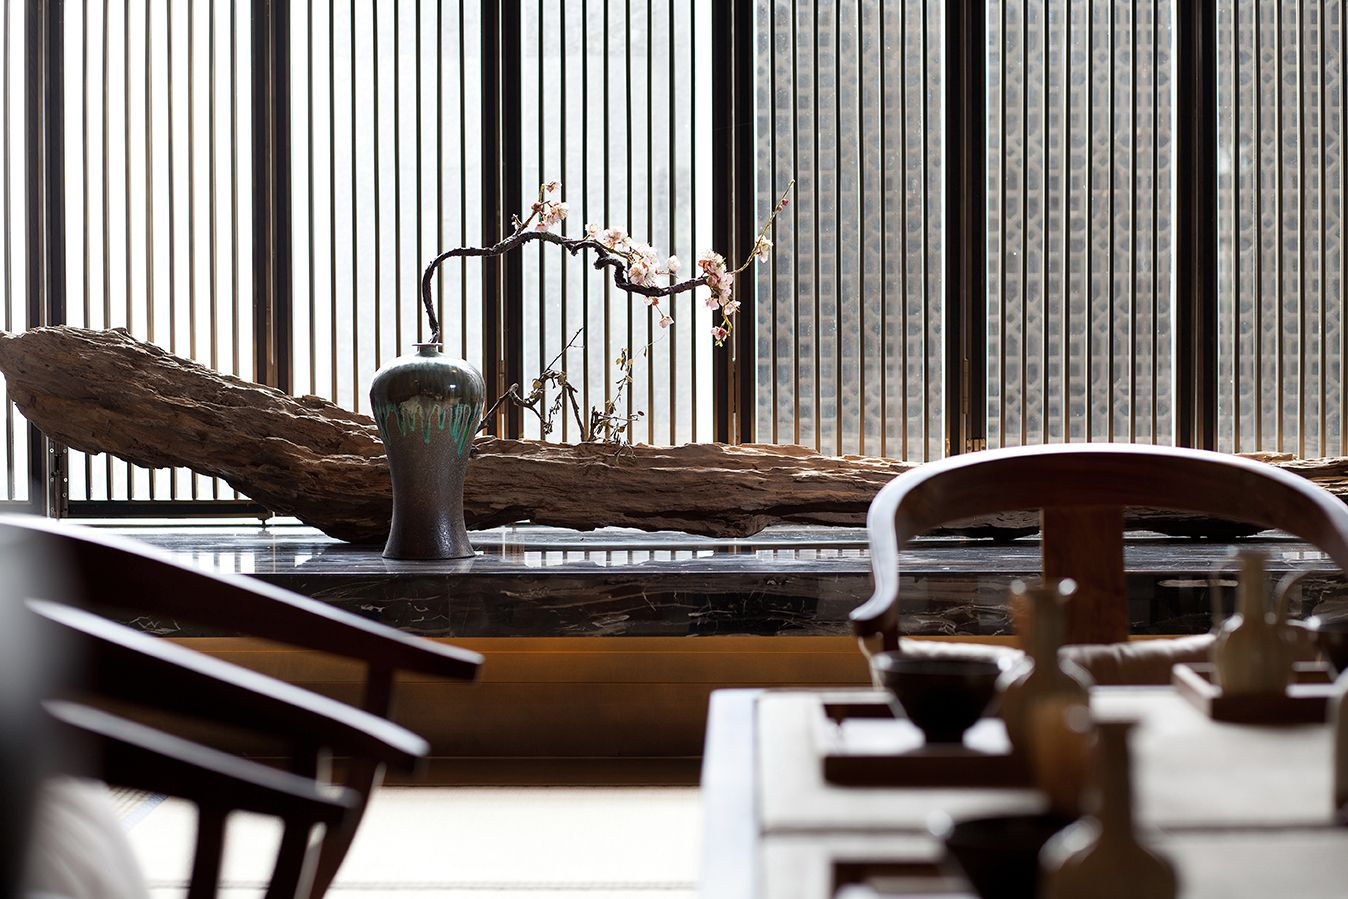 14.jpg | TEA HOUSE | Pinterest | Interiors, Oriental and China on chinese art design, chinese bedroom design, chinese greenhouse design, tea logo design, food house design, chinese grill design, chinese garden design, ginger house design, chinese cave houses, chinese pagoda design, tea shop design, chinese house drawing, chinese contemporary design, chinese gazebo design, cooking house design, chinese style interior design, chinese wrought iron design, chinese asian design, chinese home design, chinese moon gate design,